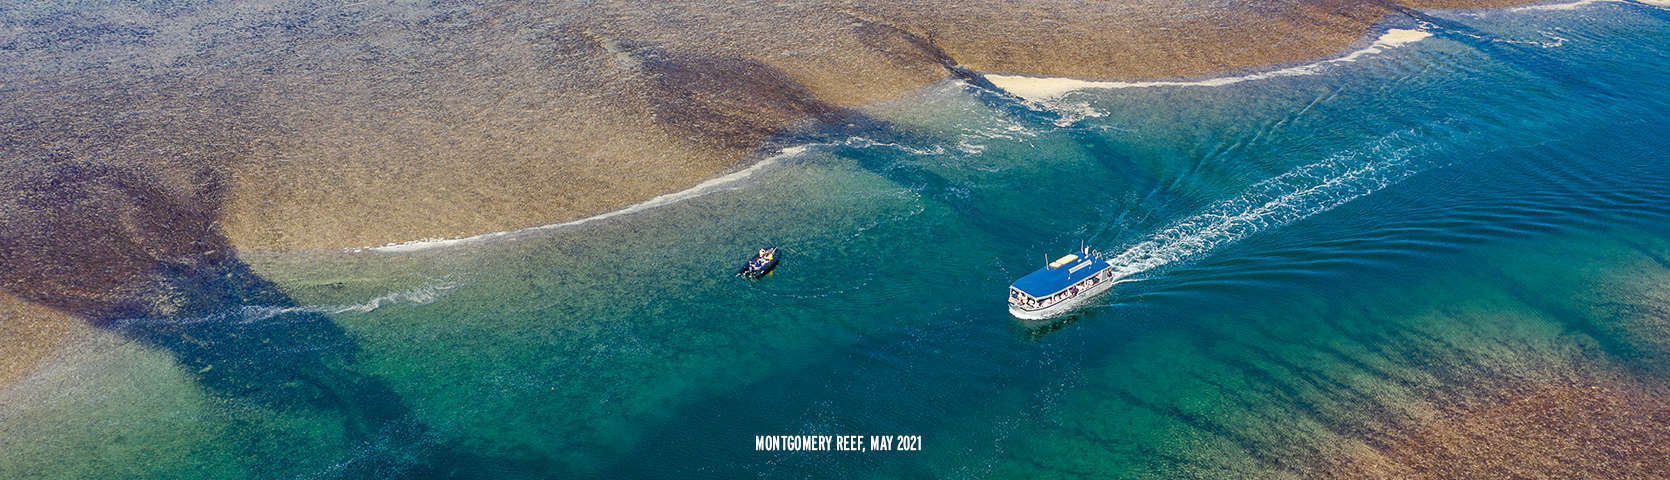 Montgomery Reef with Coral Expeditions May 2021